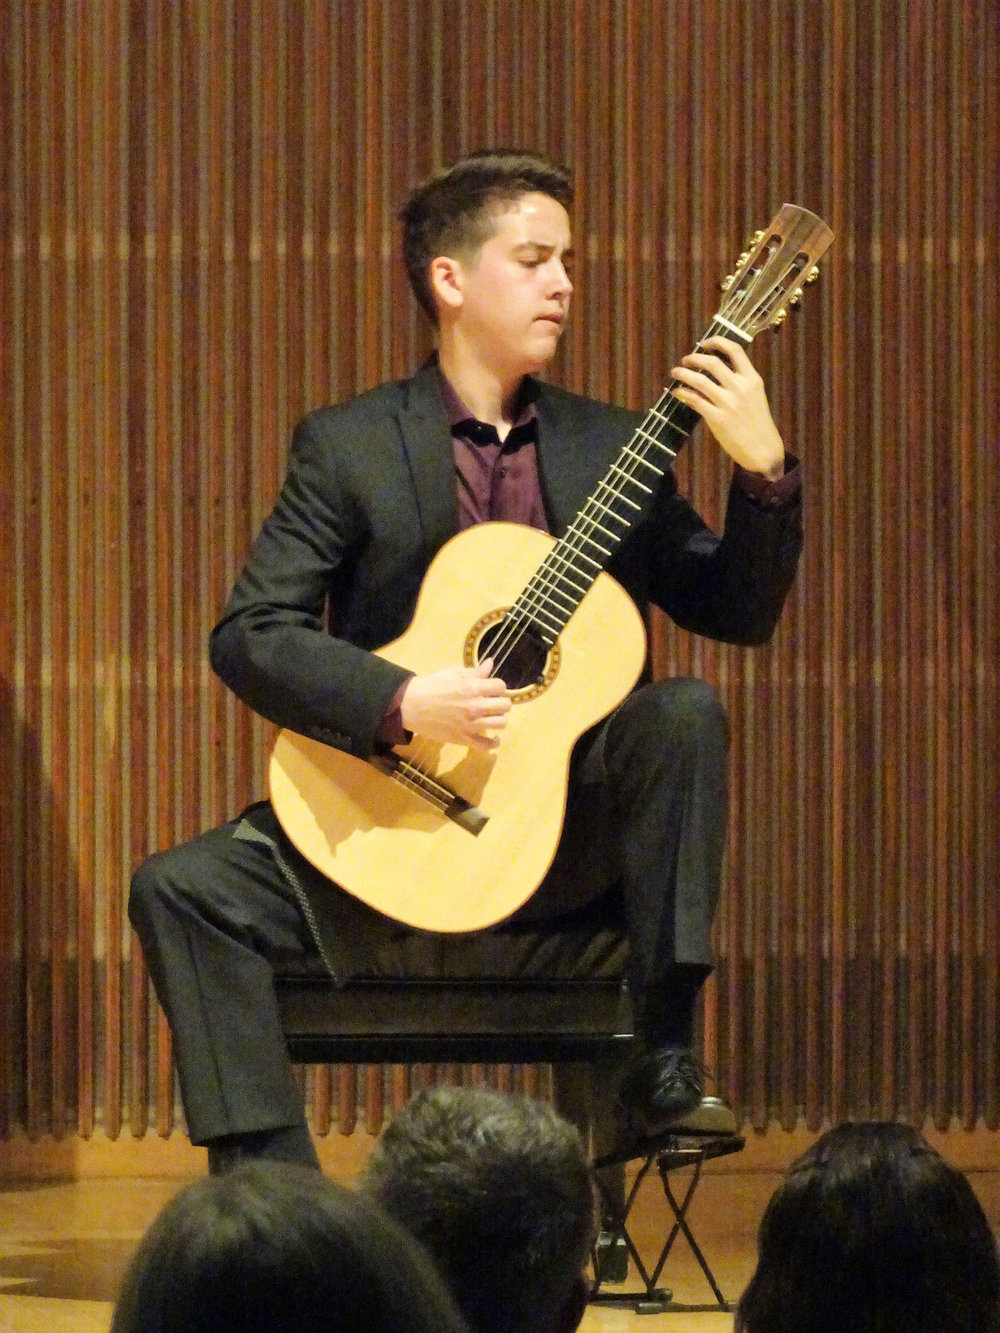 Xavier Jara on stage in Kulas Recital Hall